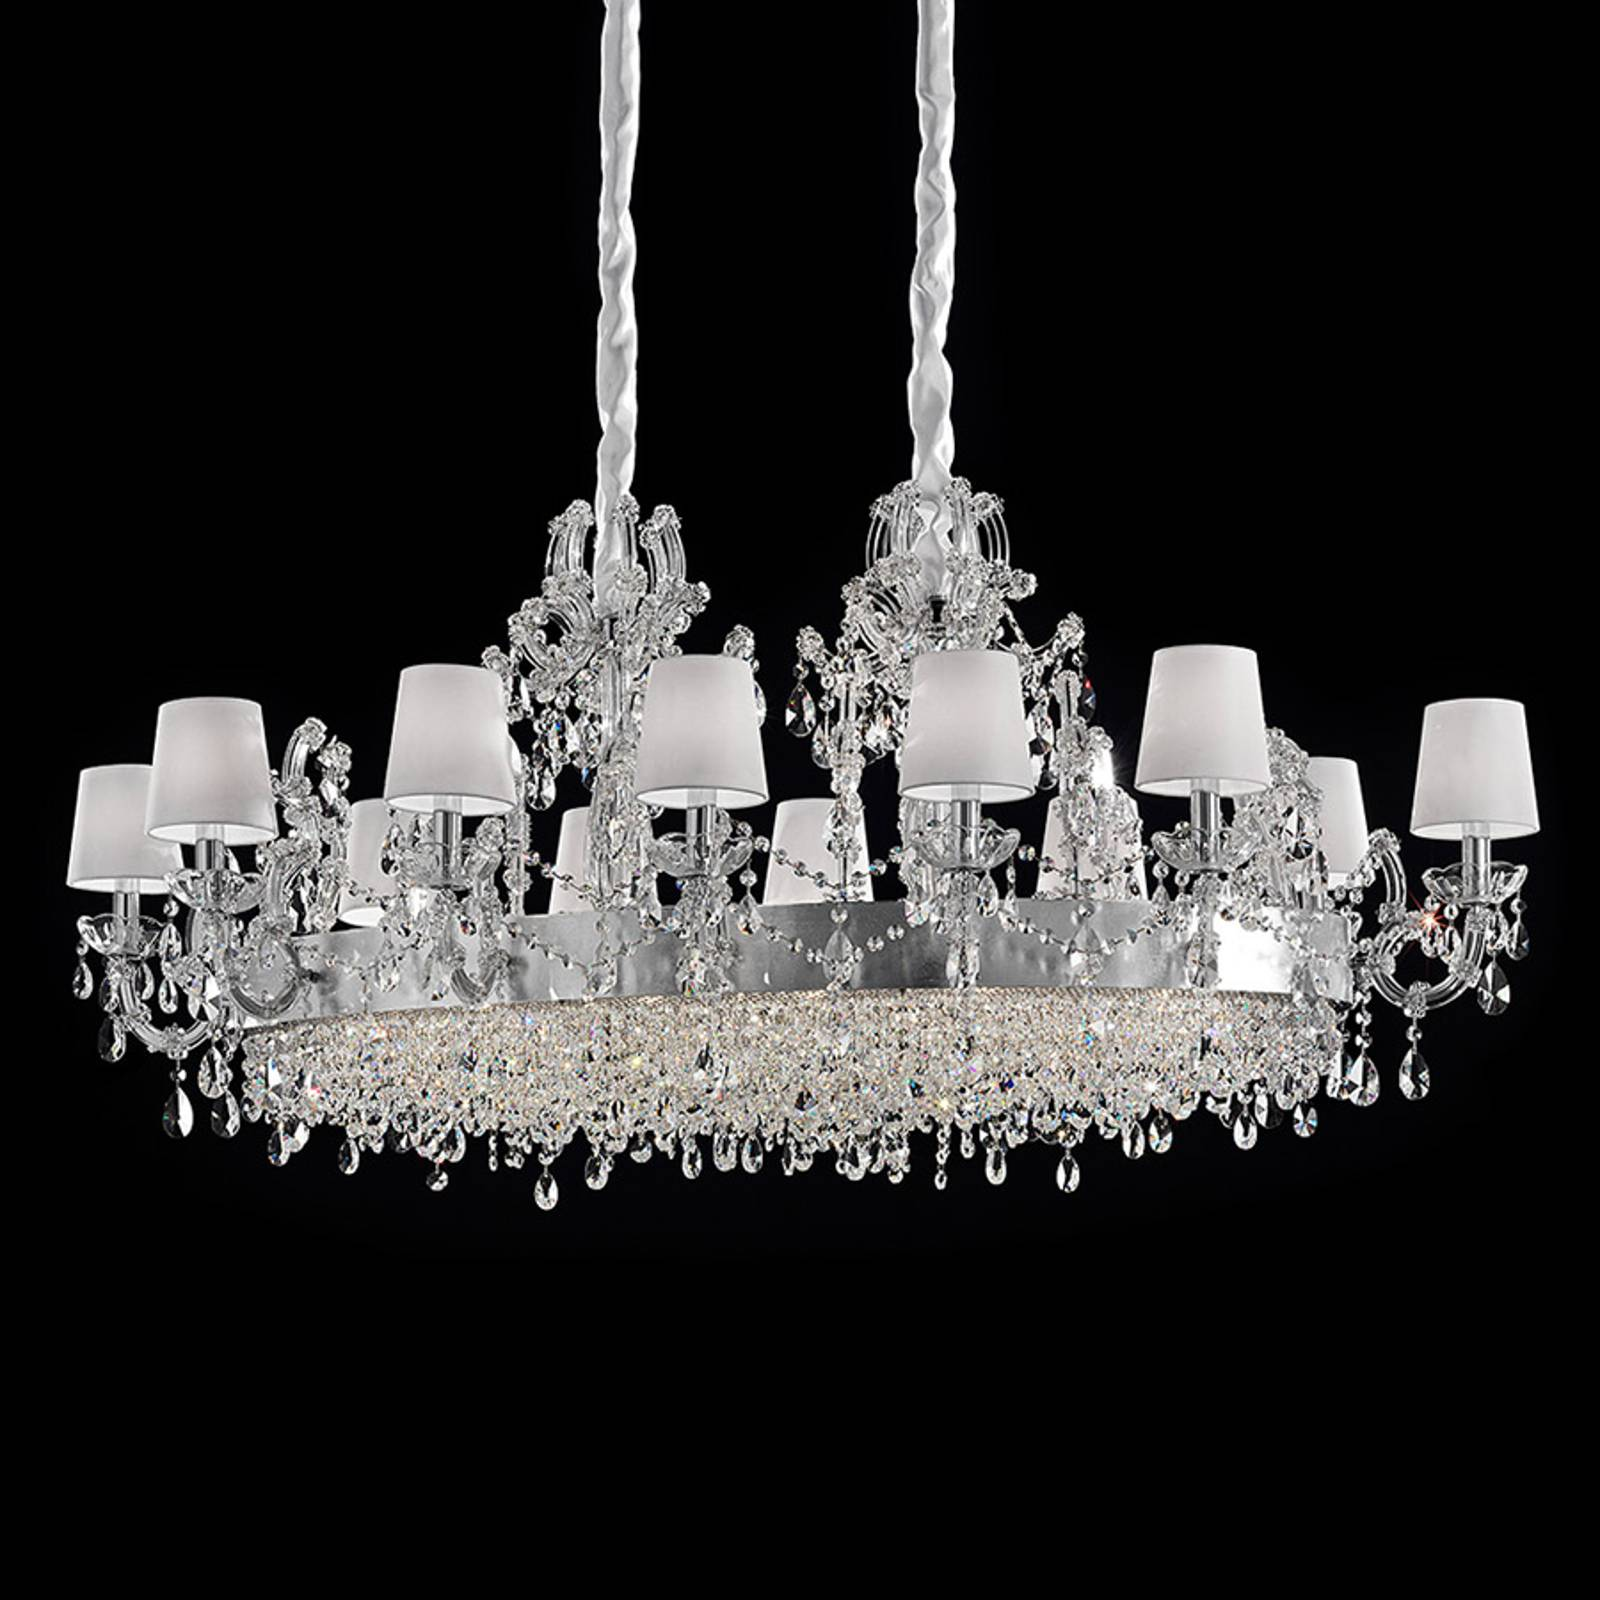 Philina richly-decorated chandelier, twelve-bulb from Masiero